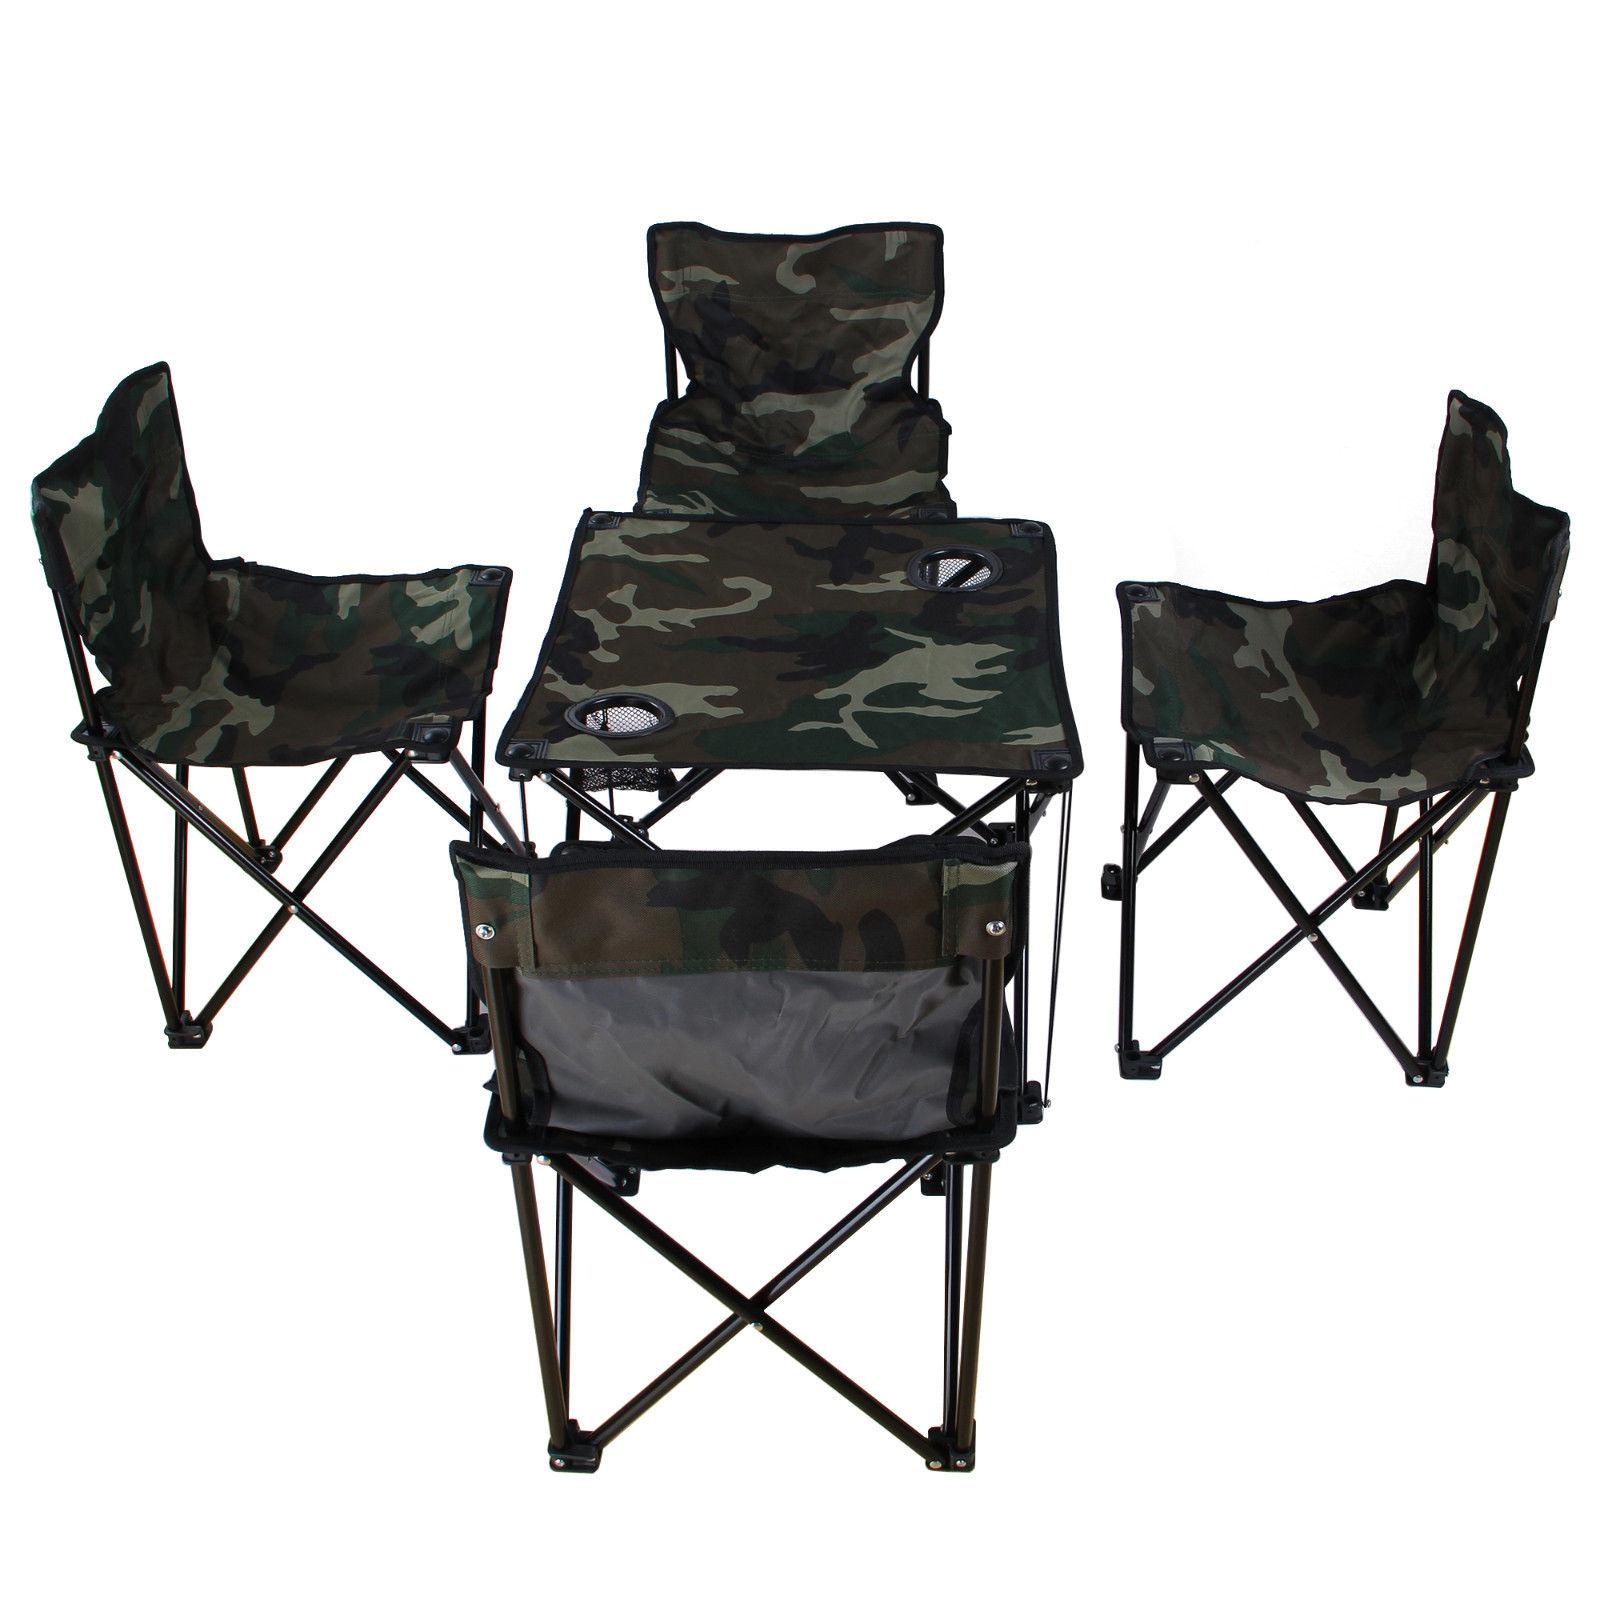 New For Hunting Blind Hiking Camping Fishing Portable 4 Folding Chairs 1 Table